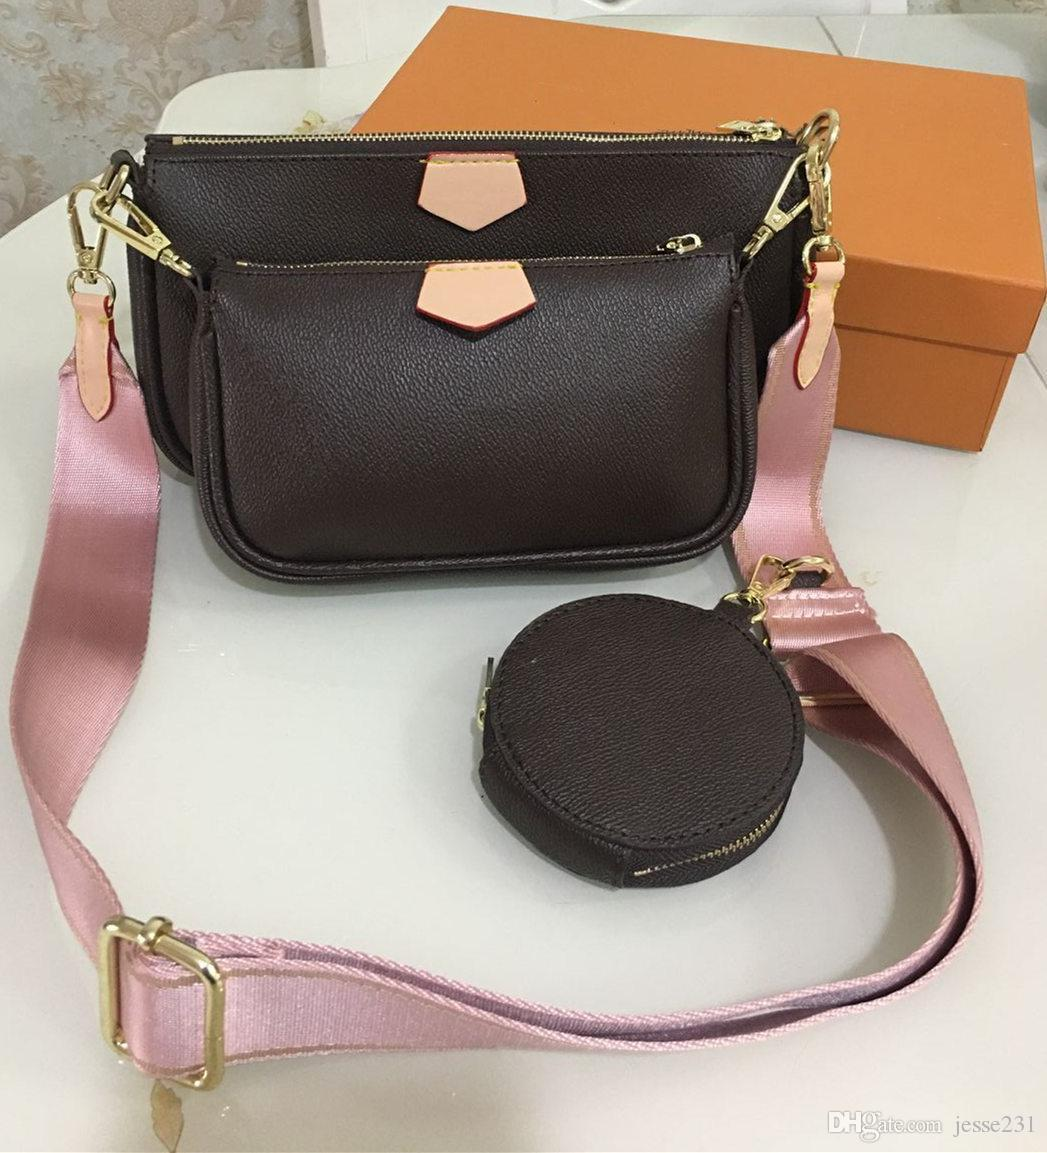 2020 New Excellent Quality Style Fashion Women Luxury Bags Lady PU Leather Handbags Brand Bags Purse Shoulder M Tote Bag Female #3918